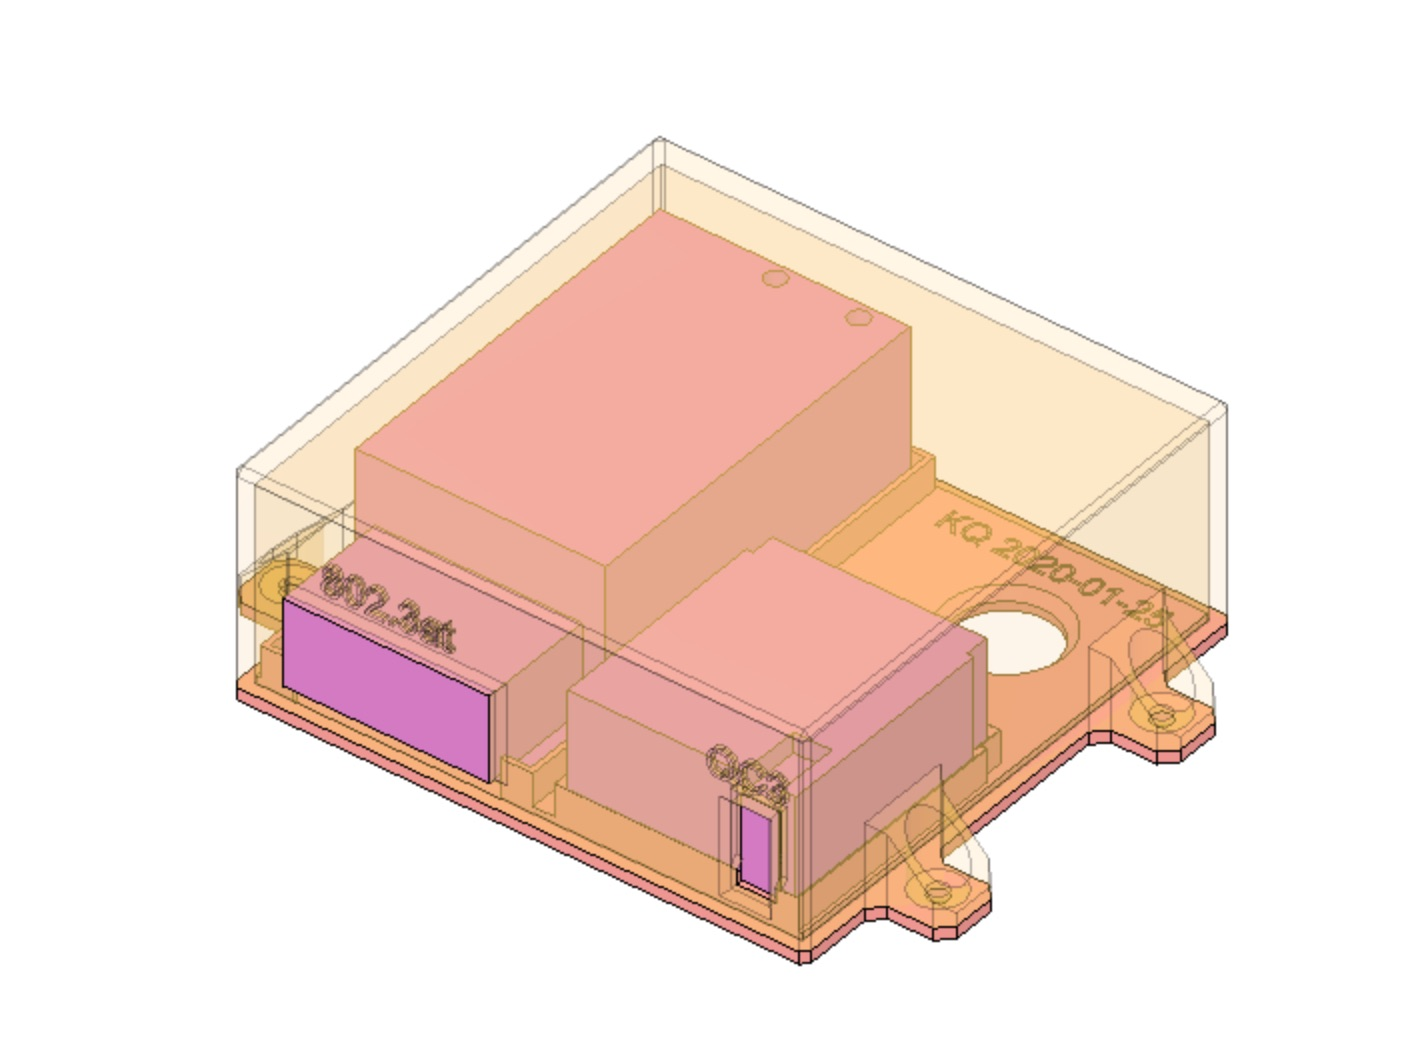 picture of assembled components, colored